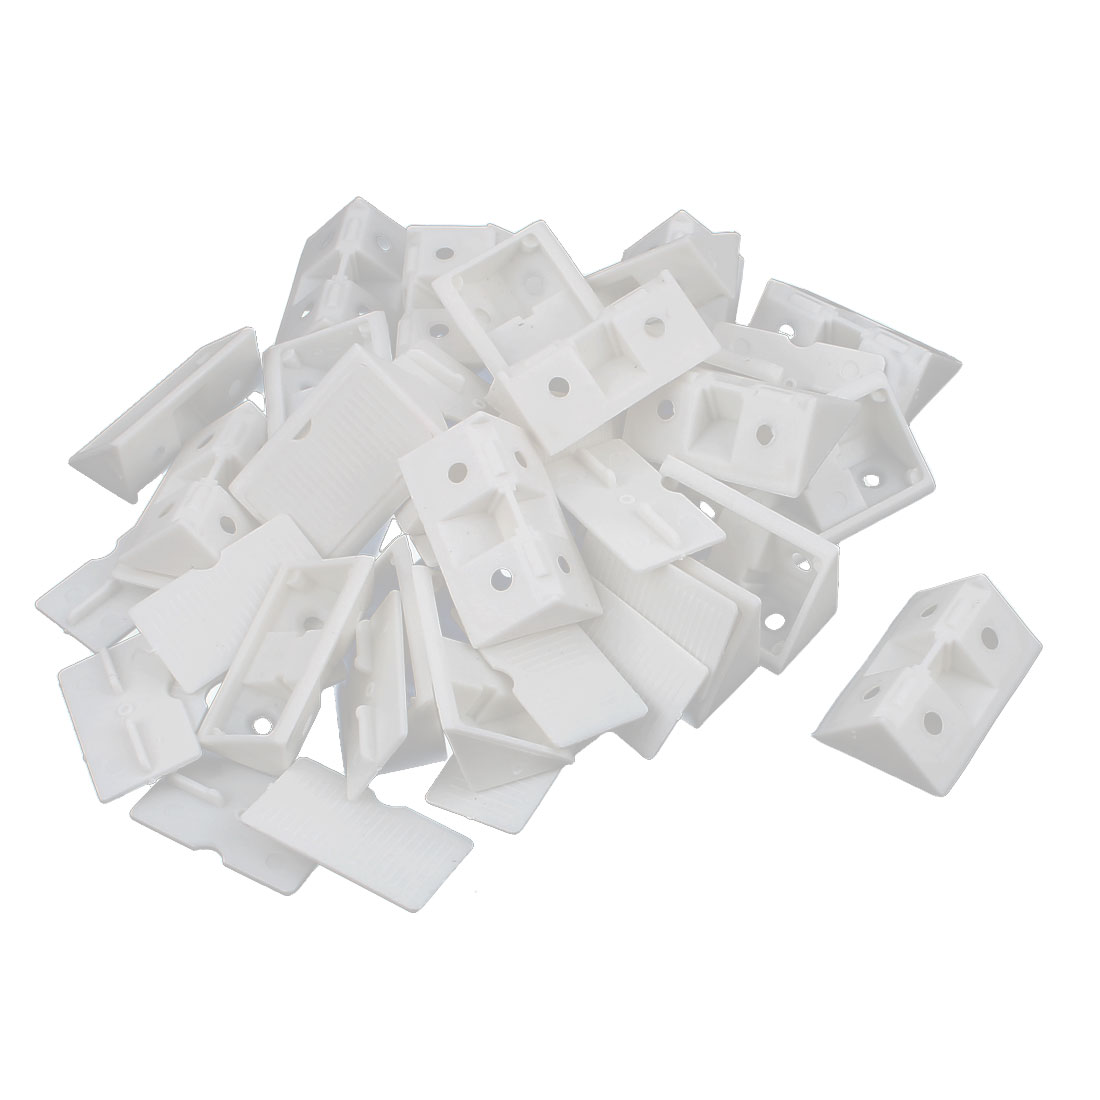 Furniture Assembly Corner Brace 90 Degree Angle Plastic Bracket White 24Pcs